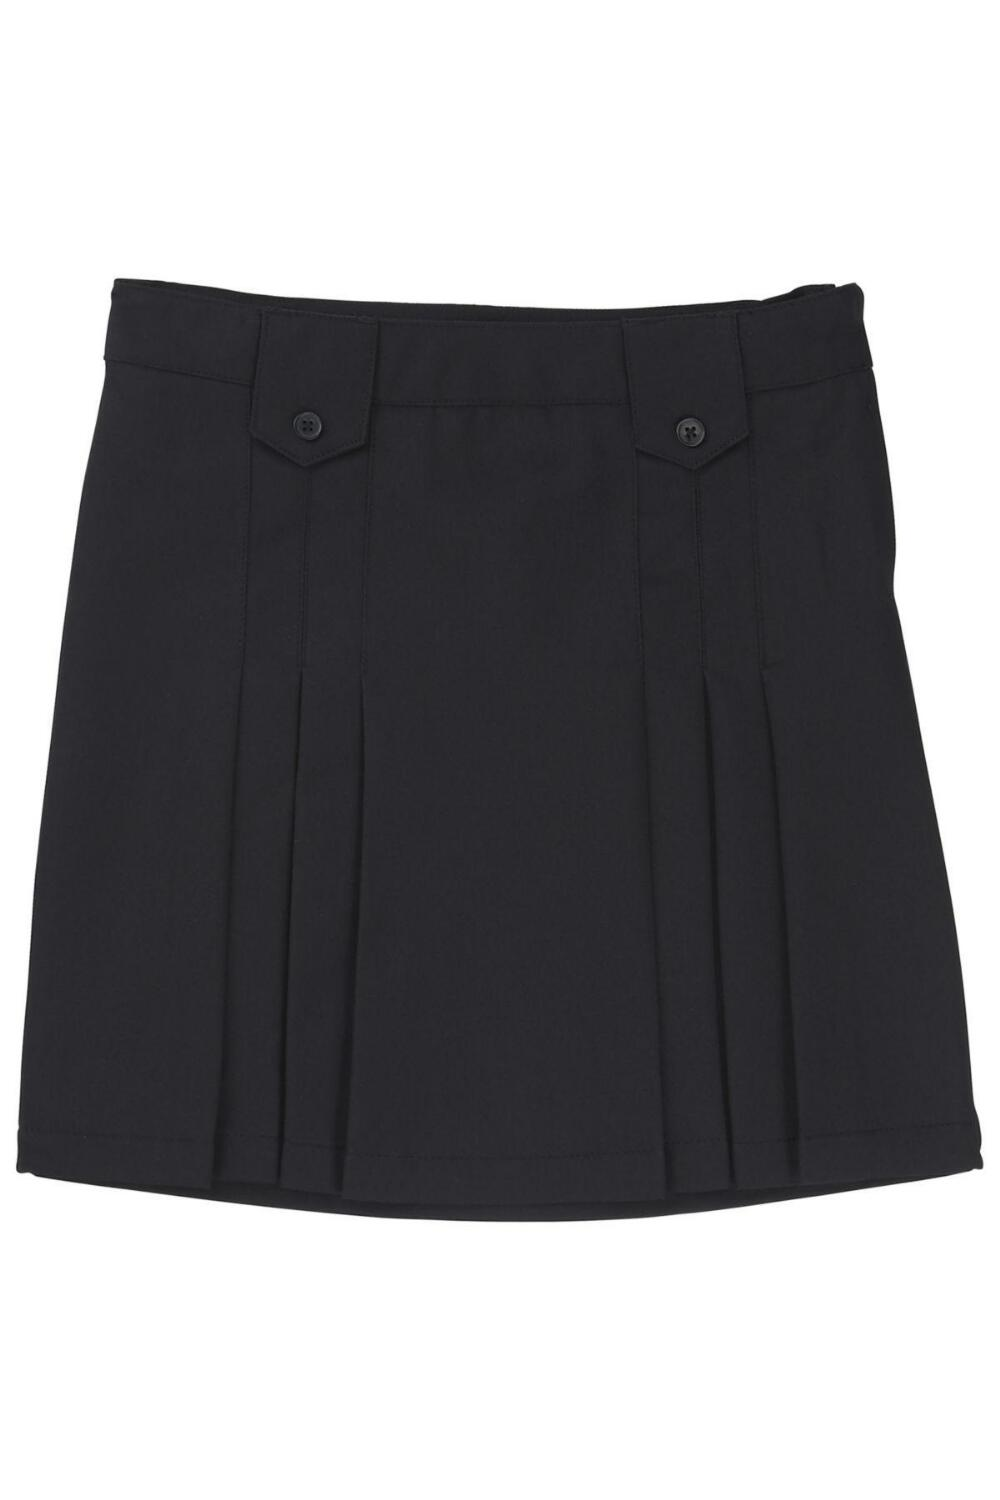 French Toast Front Pleated Skirt (Color: Skirt Black, Size: Skirt Size 5)